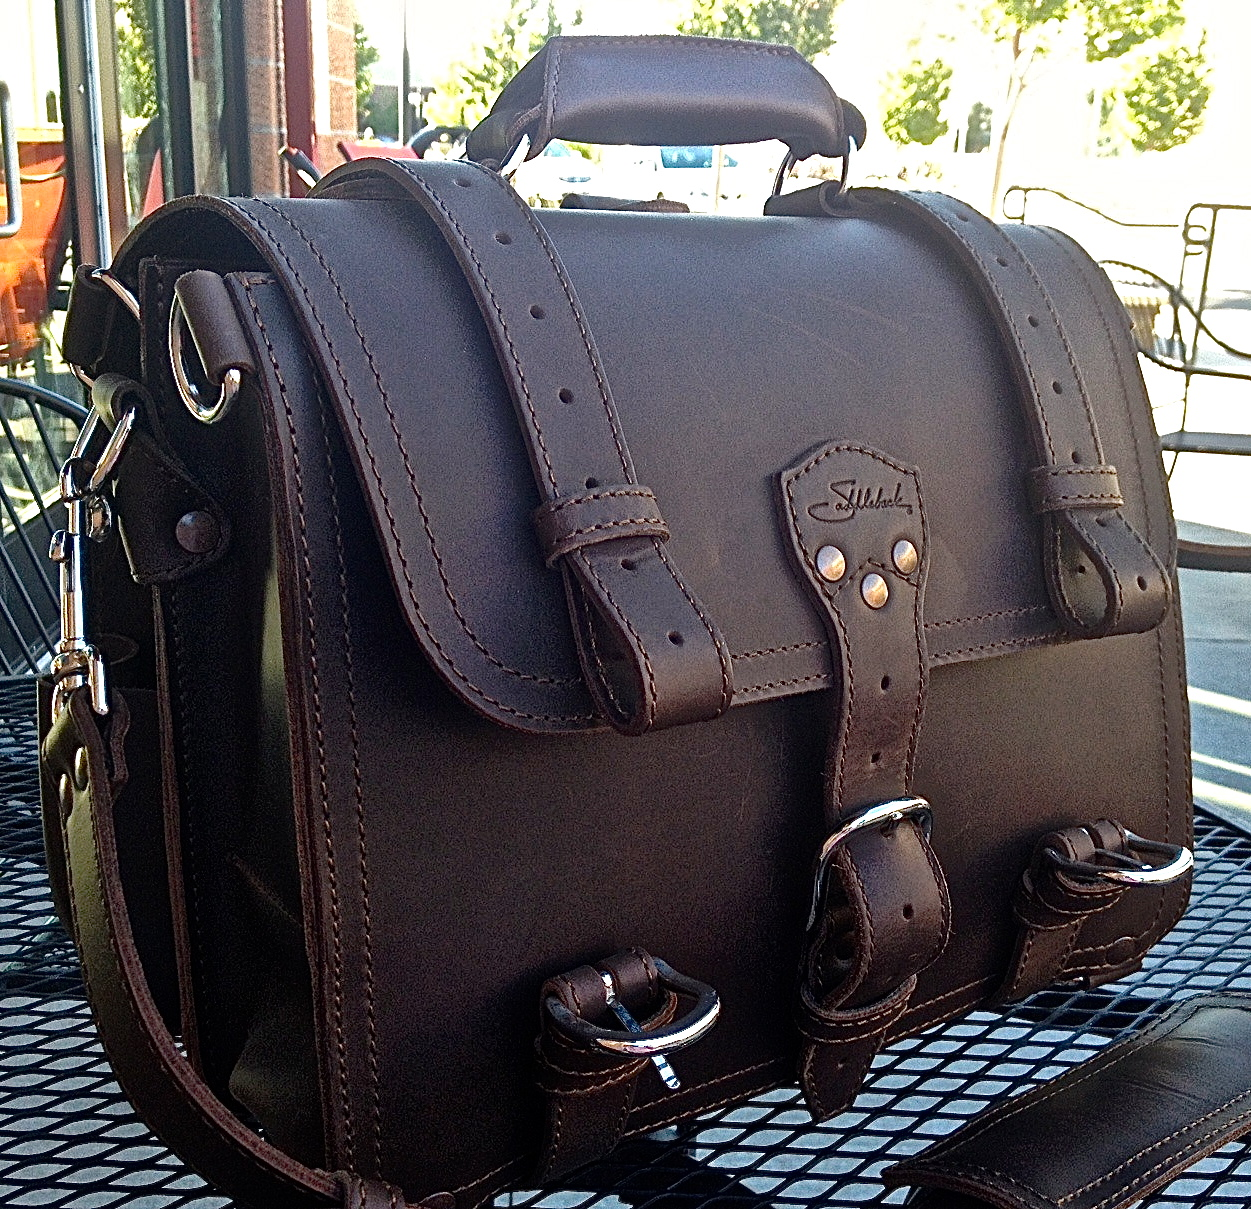 Review: Saddleback Leather Briefcase | Riding